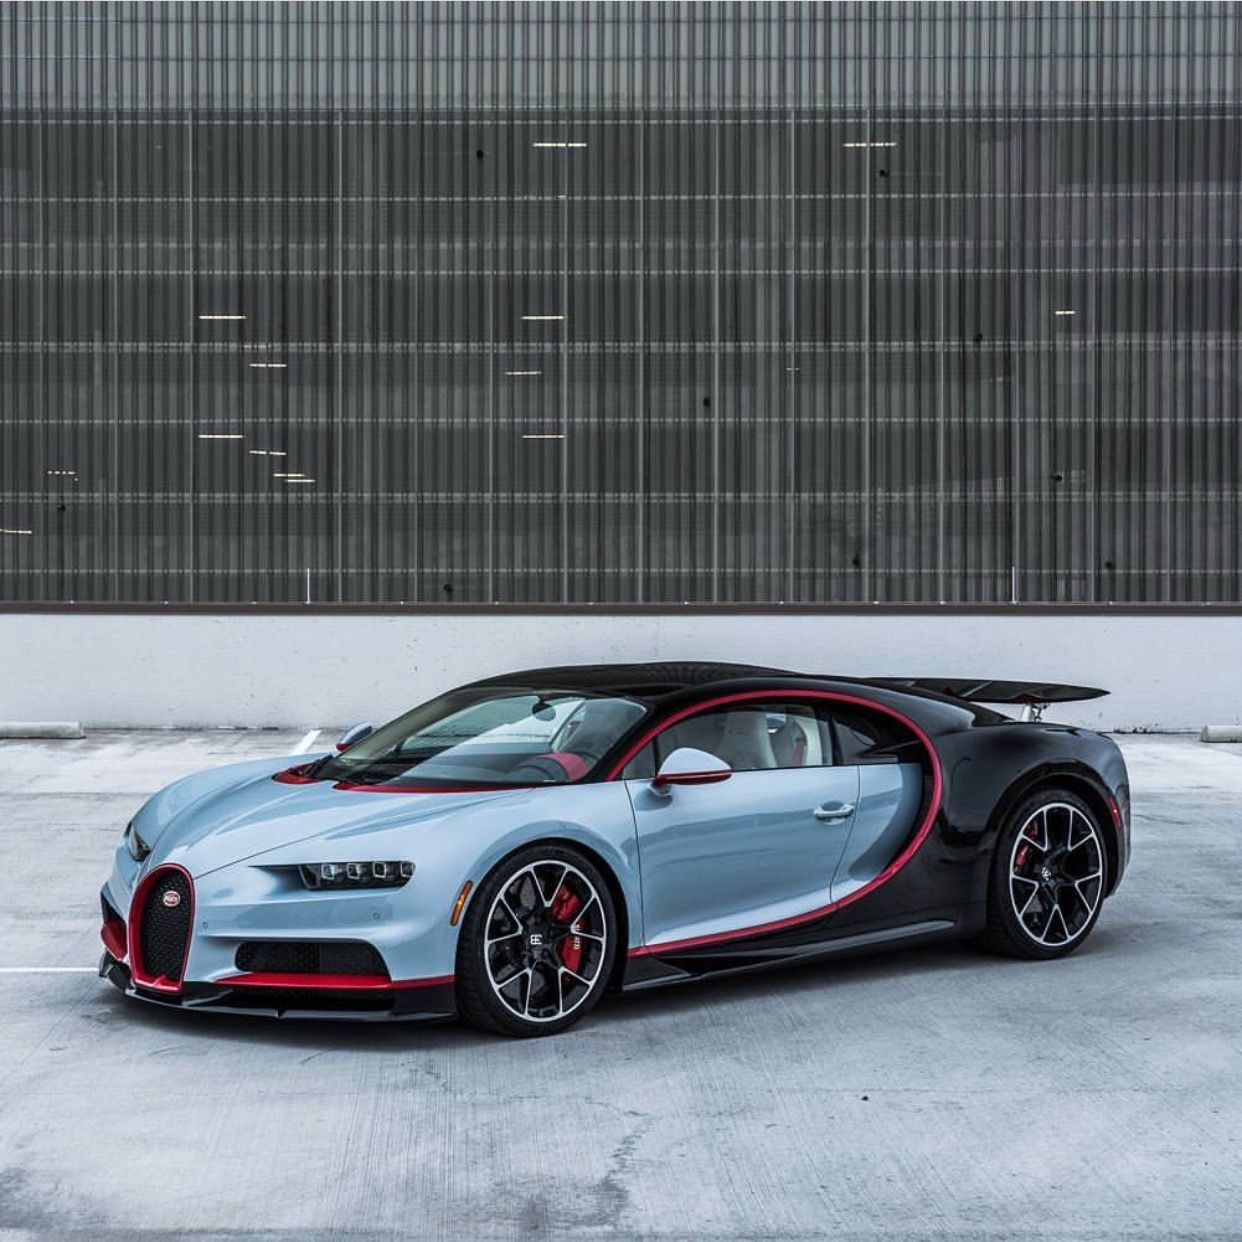 Bugatti Chiron Painted In Gray Black W Red Accents And Exposed Carbon Fiber Photo Taken By Pepperyandel Bugatti Chiron Bugatti Cars Sports Cars Bugatti